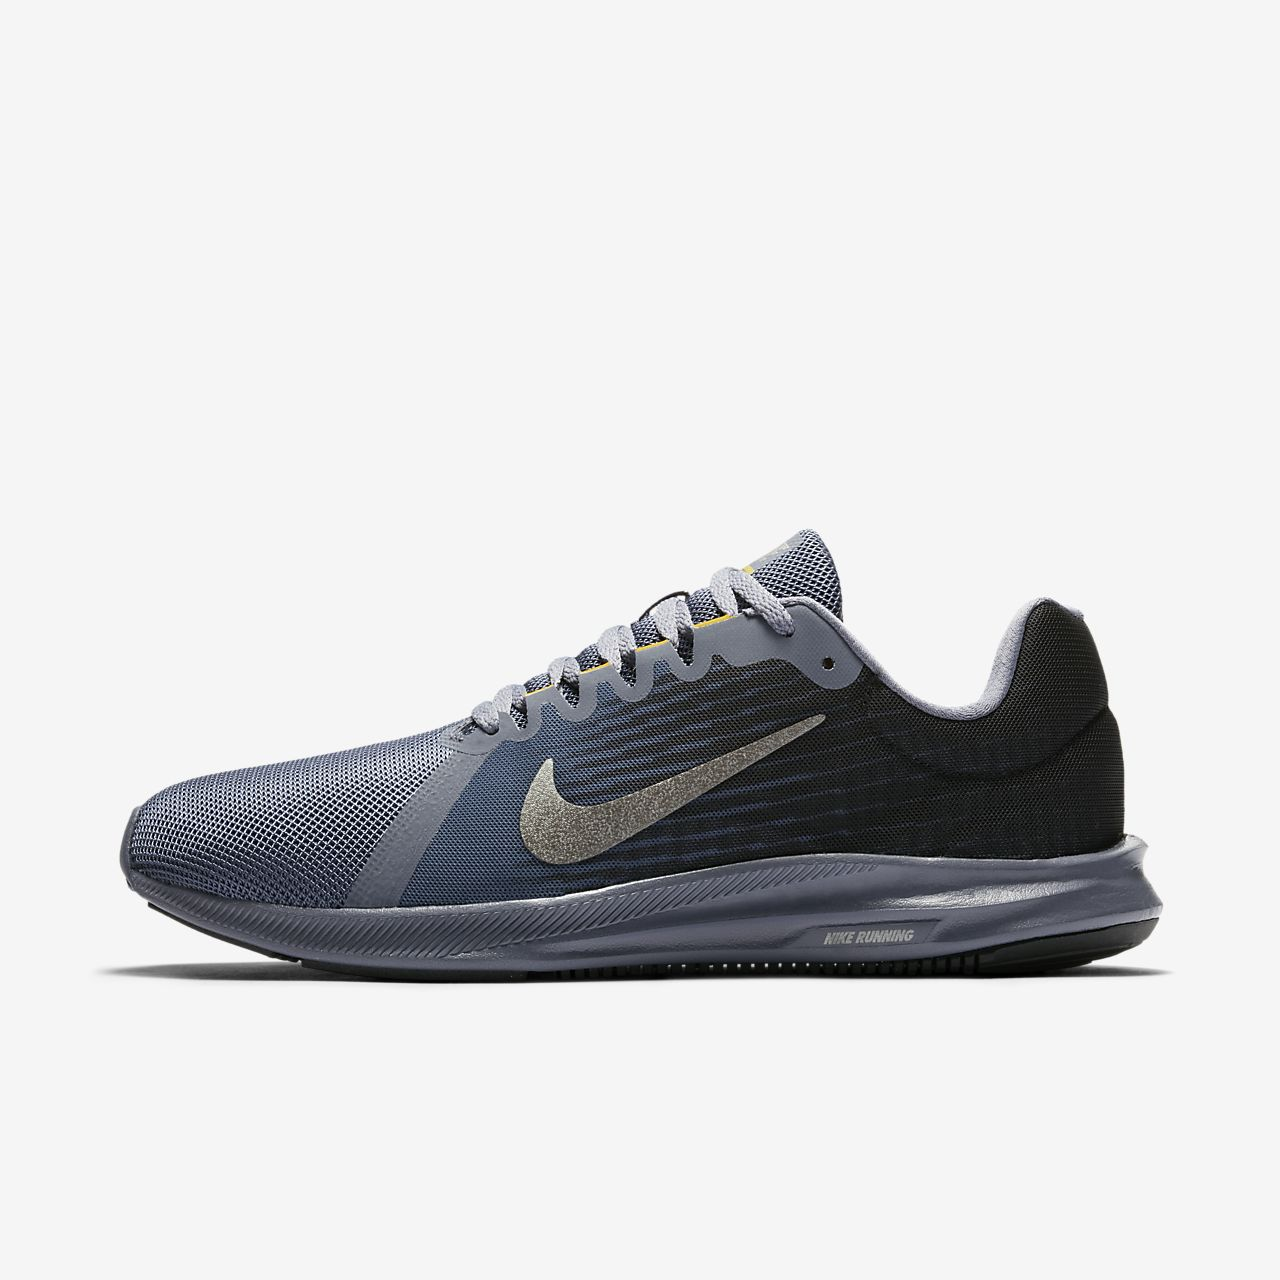 detailed look 68ab2 d9245 ... Nike Downshifter 8 Zapatillas de running - Hombre